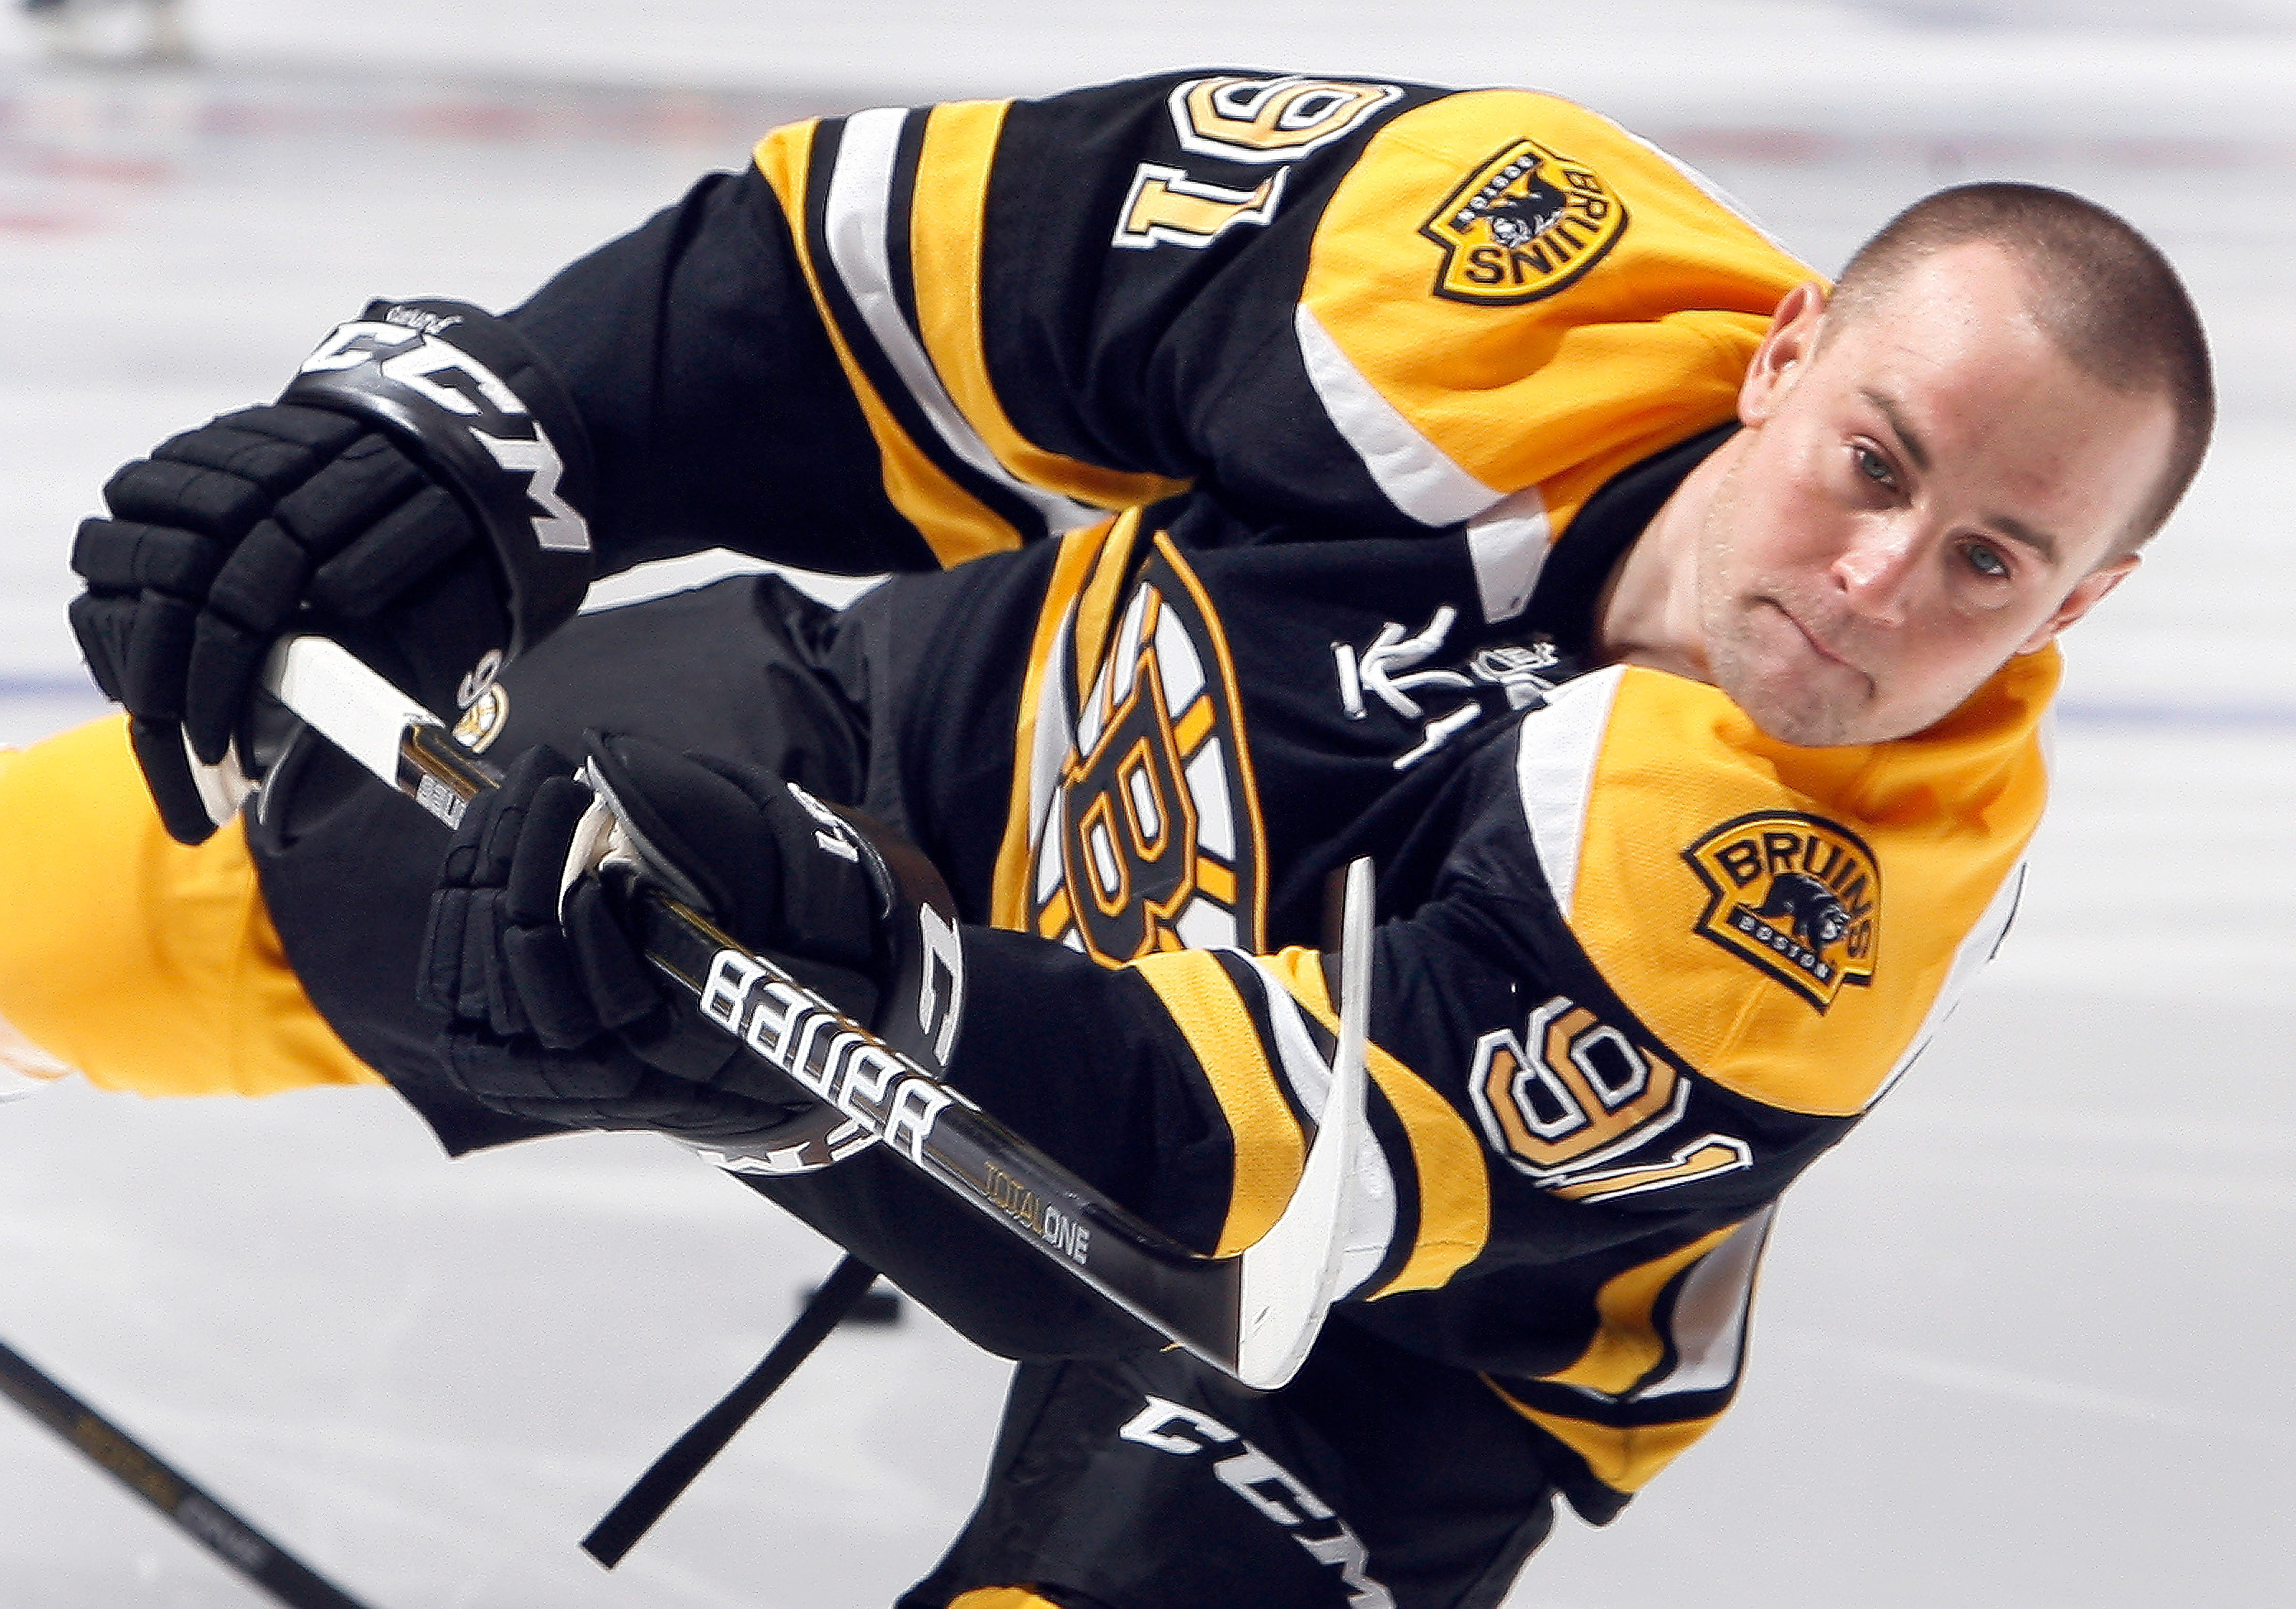 TORONTO, CANADA - DECEMBER 4: Marc Savard #91 of the Boston Bruins shoots before game action against the Toronto Maple Leafs at the Air Canada Centre December 4, 2010 in Toronto, Ontario, Canada. (Photo by Abelimages / Getty Images)